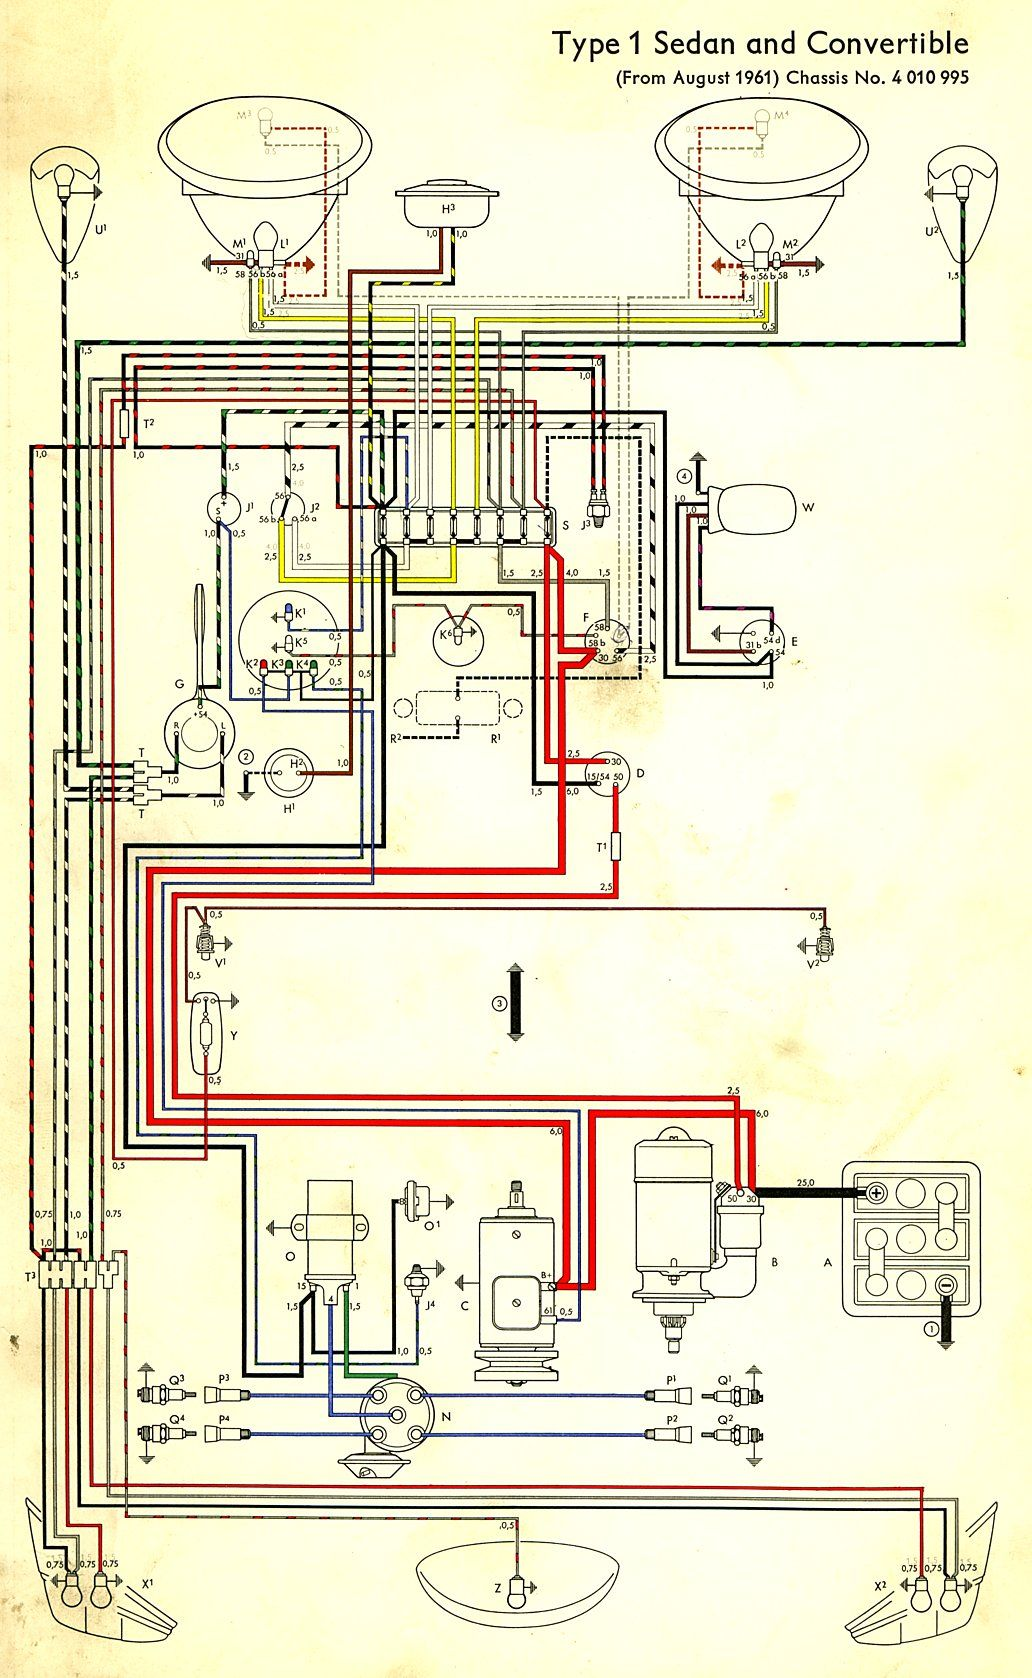 Wiring Diagram In Color 1964 Vw Bug Beetle Convertible The Samba Jamies 12 Volt Camper Diagrams